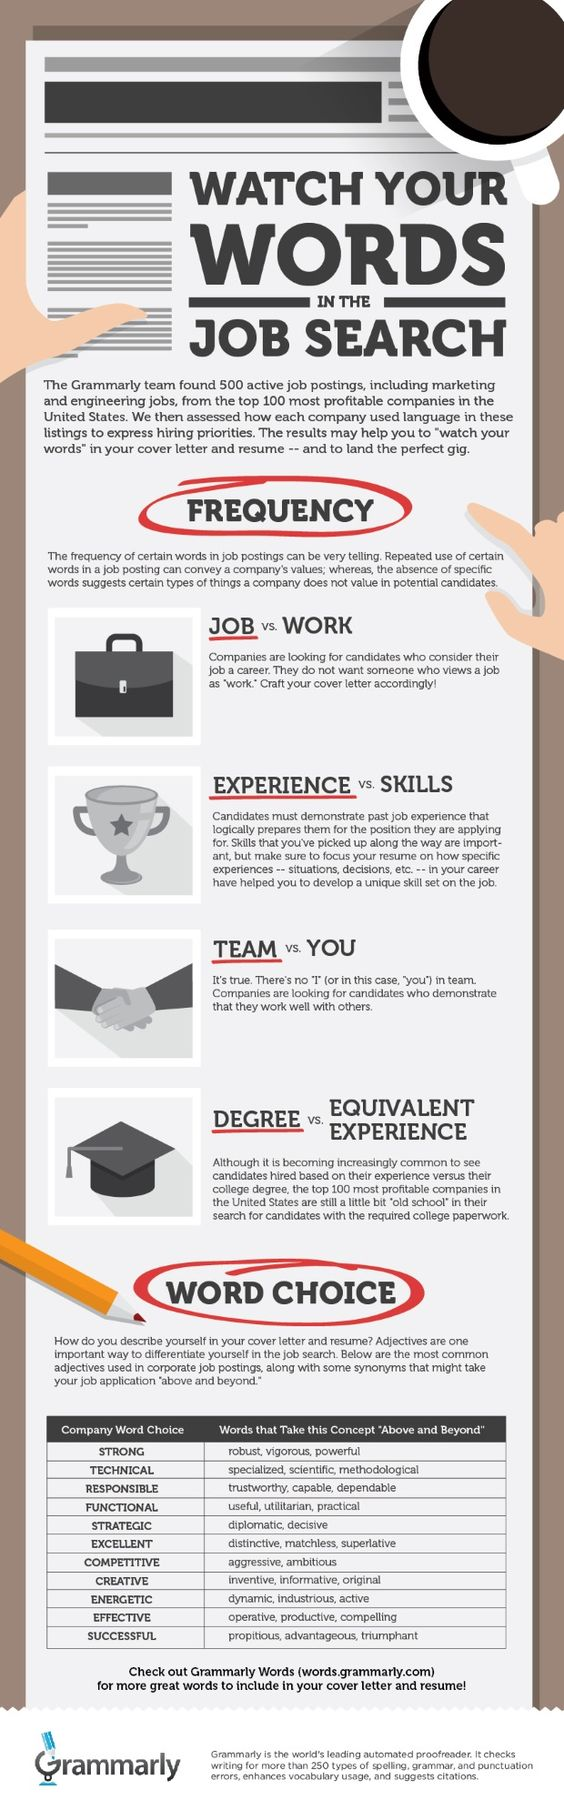 Watch Your Words In Your Cover Letter U0026 Resume Can Help You Get The Gig  Your Searching For. #Dreamjob | Ideas For College | Pinterest | Cover  Letter Resume, ...  Help With Resume Wording